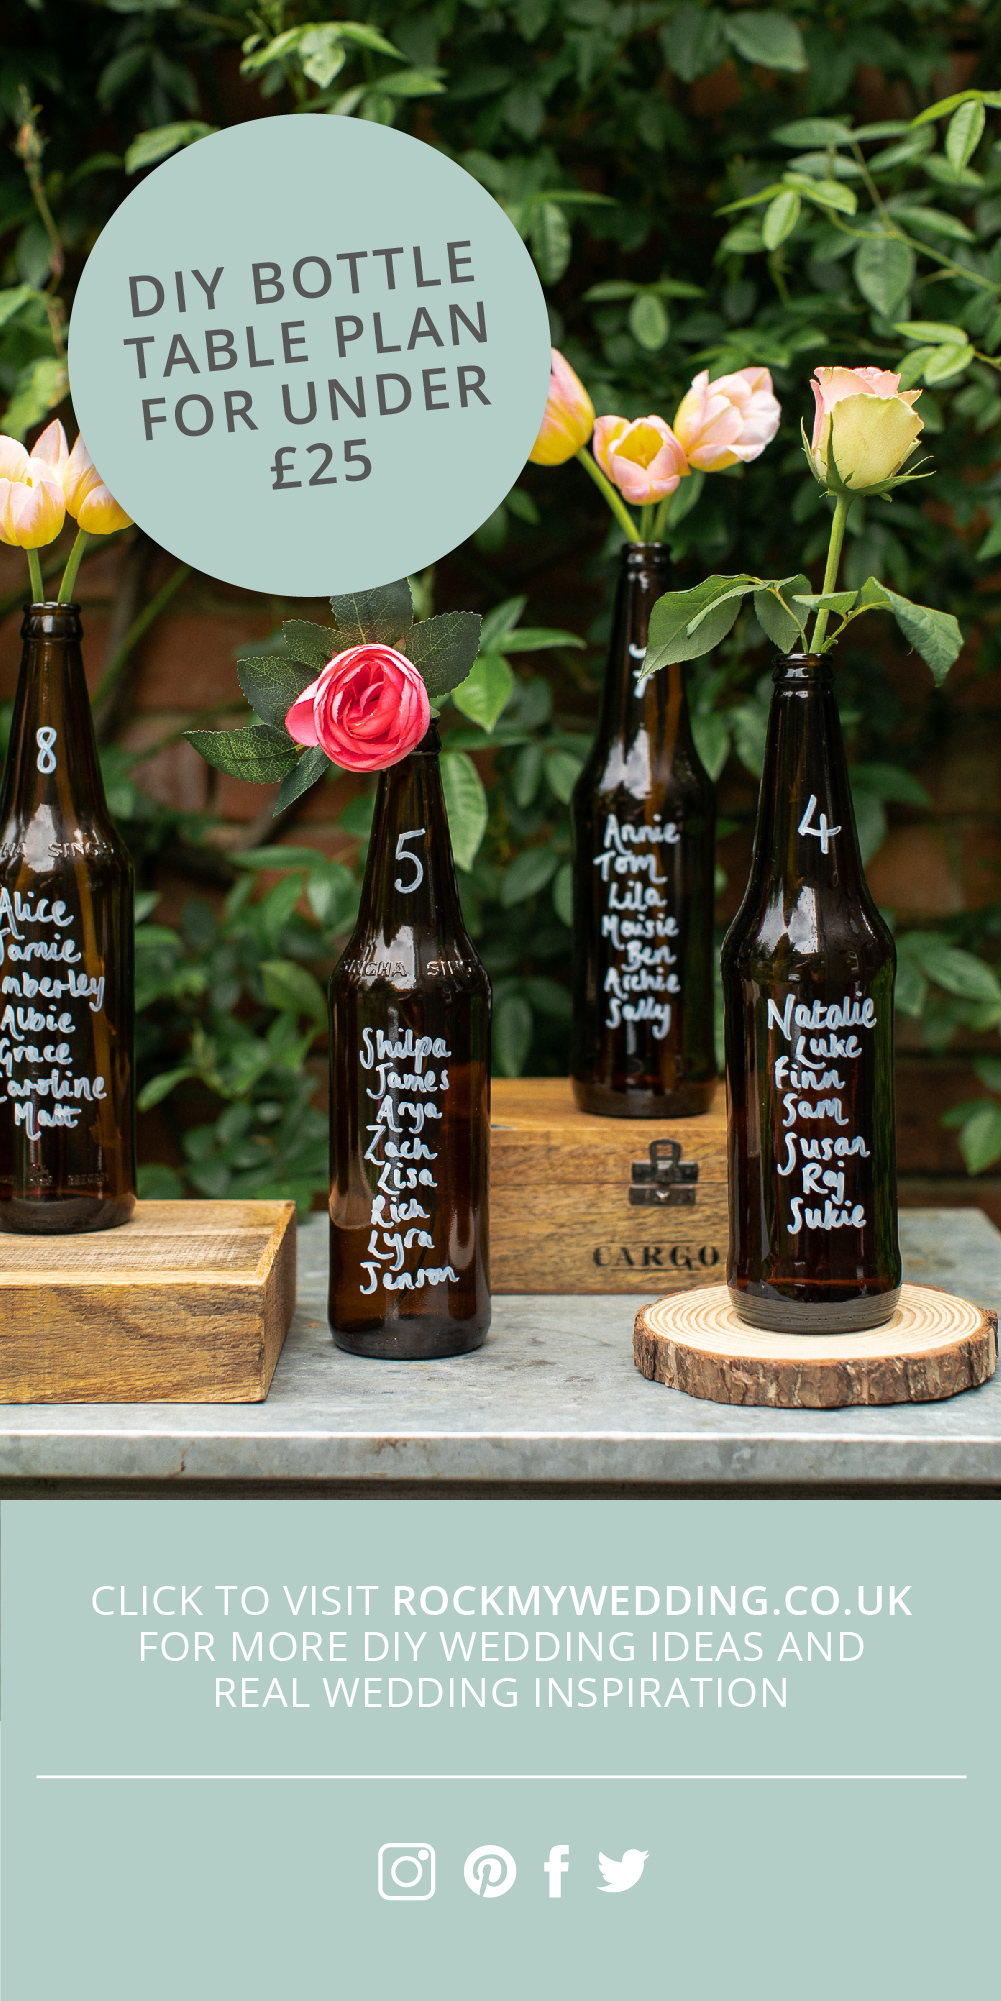 Bottle table plan created using glass bottles, a white Pebeo pen, bright florals and a rustic wooden table